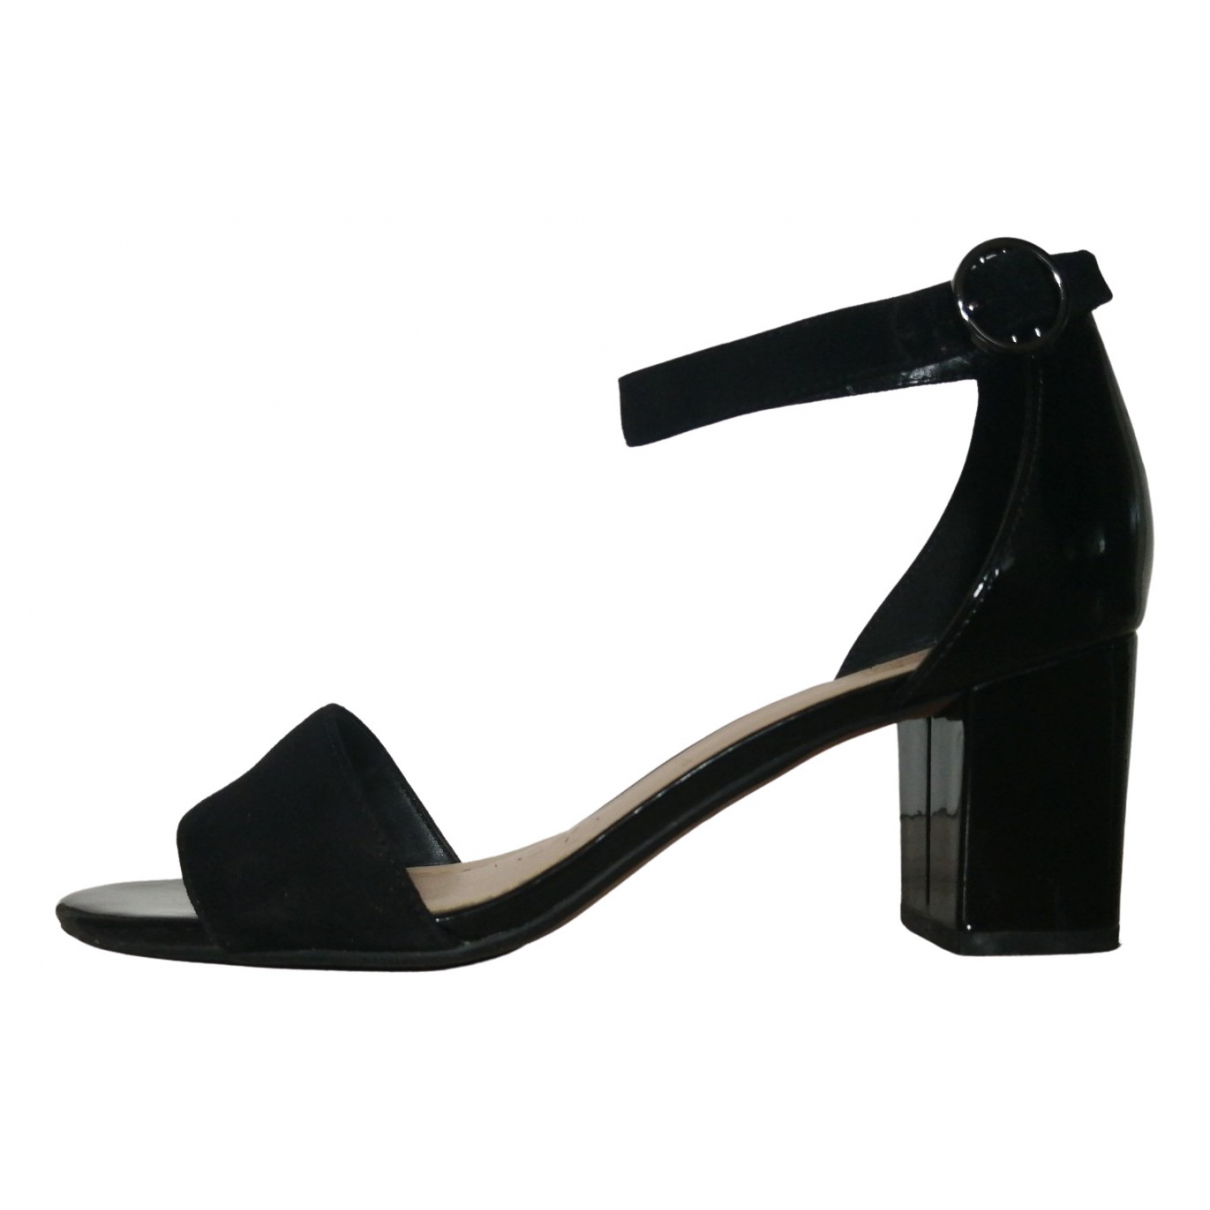 Clarks \N Black Leather Heels for Women 39.5 EU